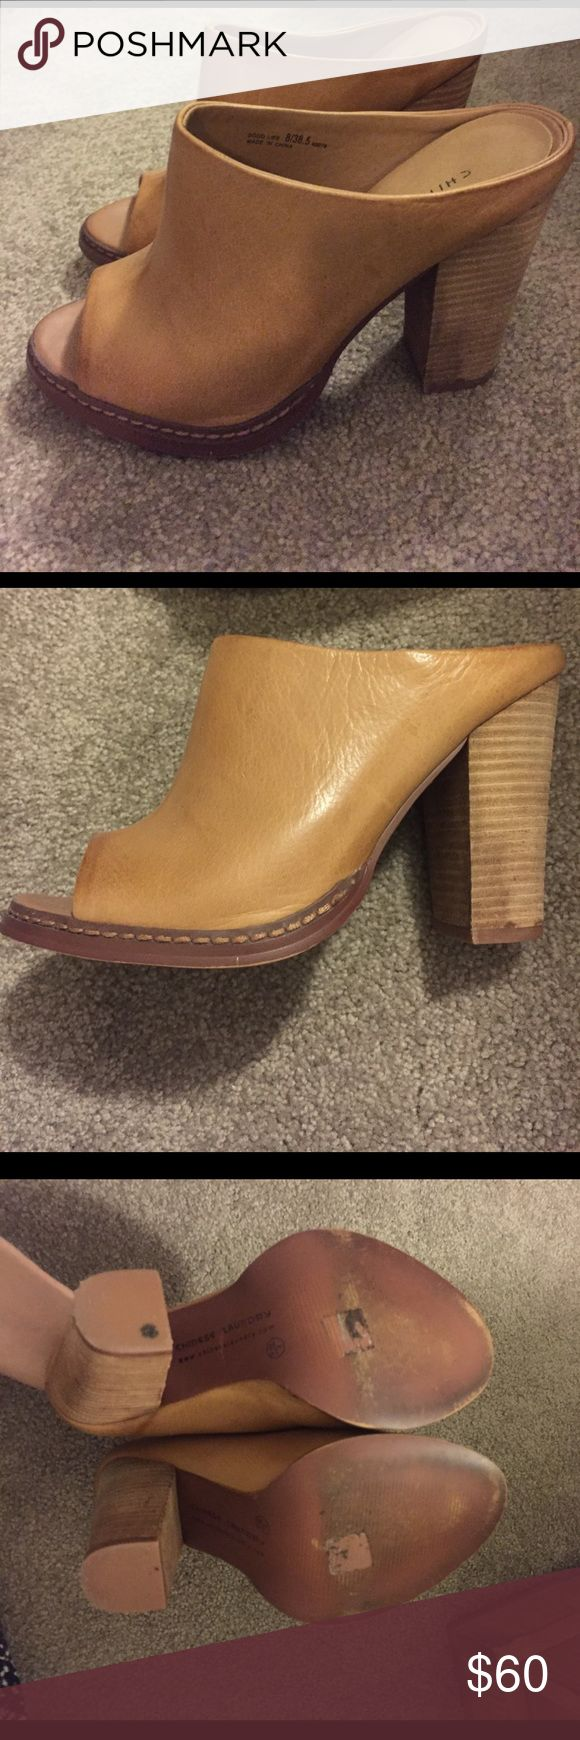 Chinese Laundry tan leather mules Chinese Laundry tan leather mules - super minimally worn, great condition. Make me a reasonable offer! Chinese Laundry Shoes Mules & Clogs